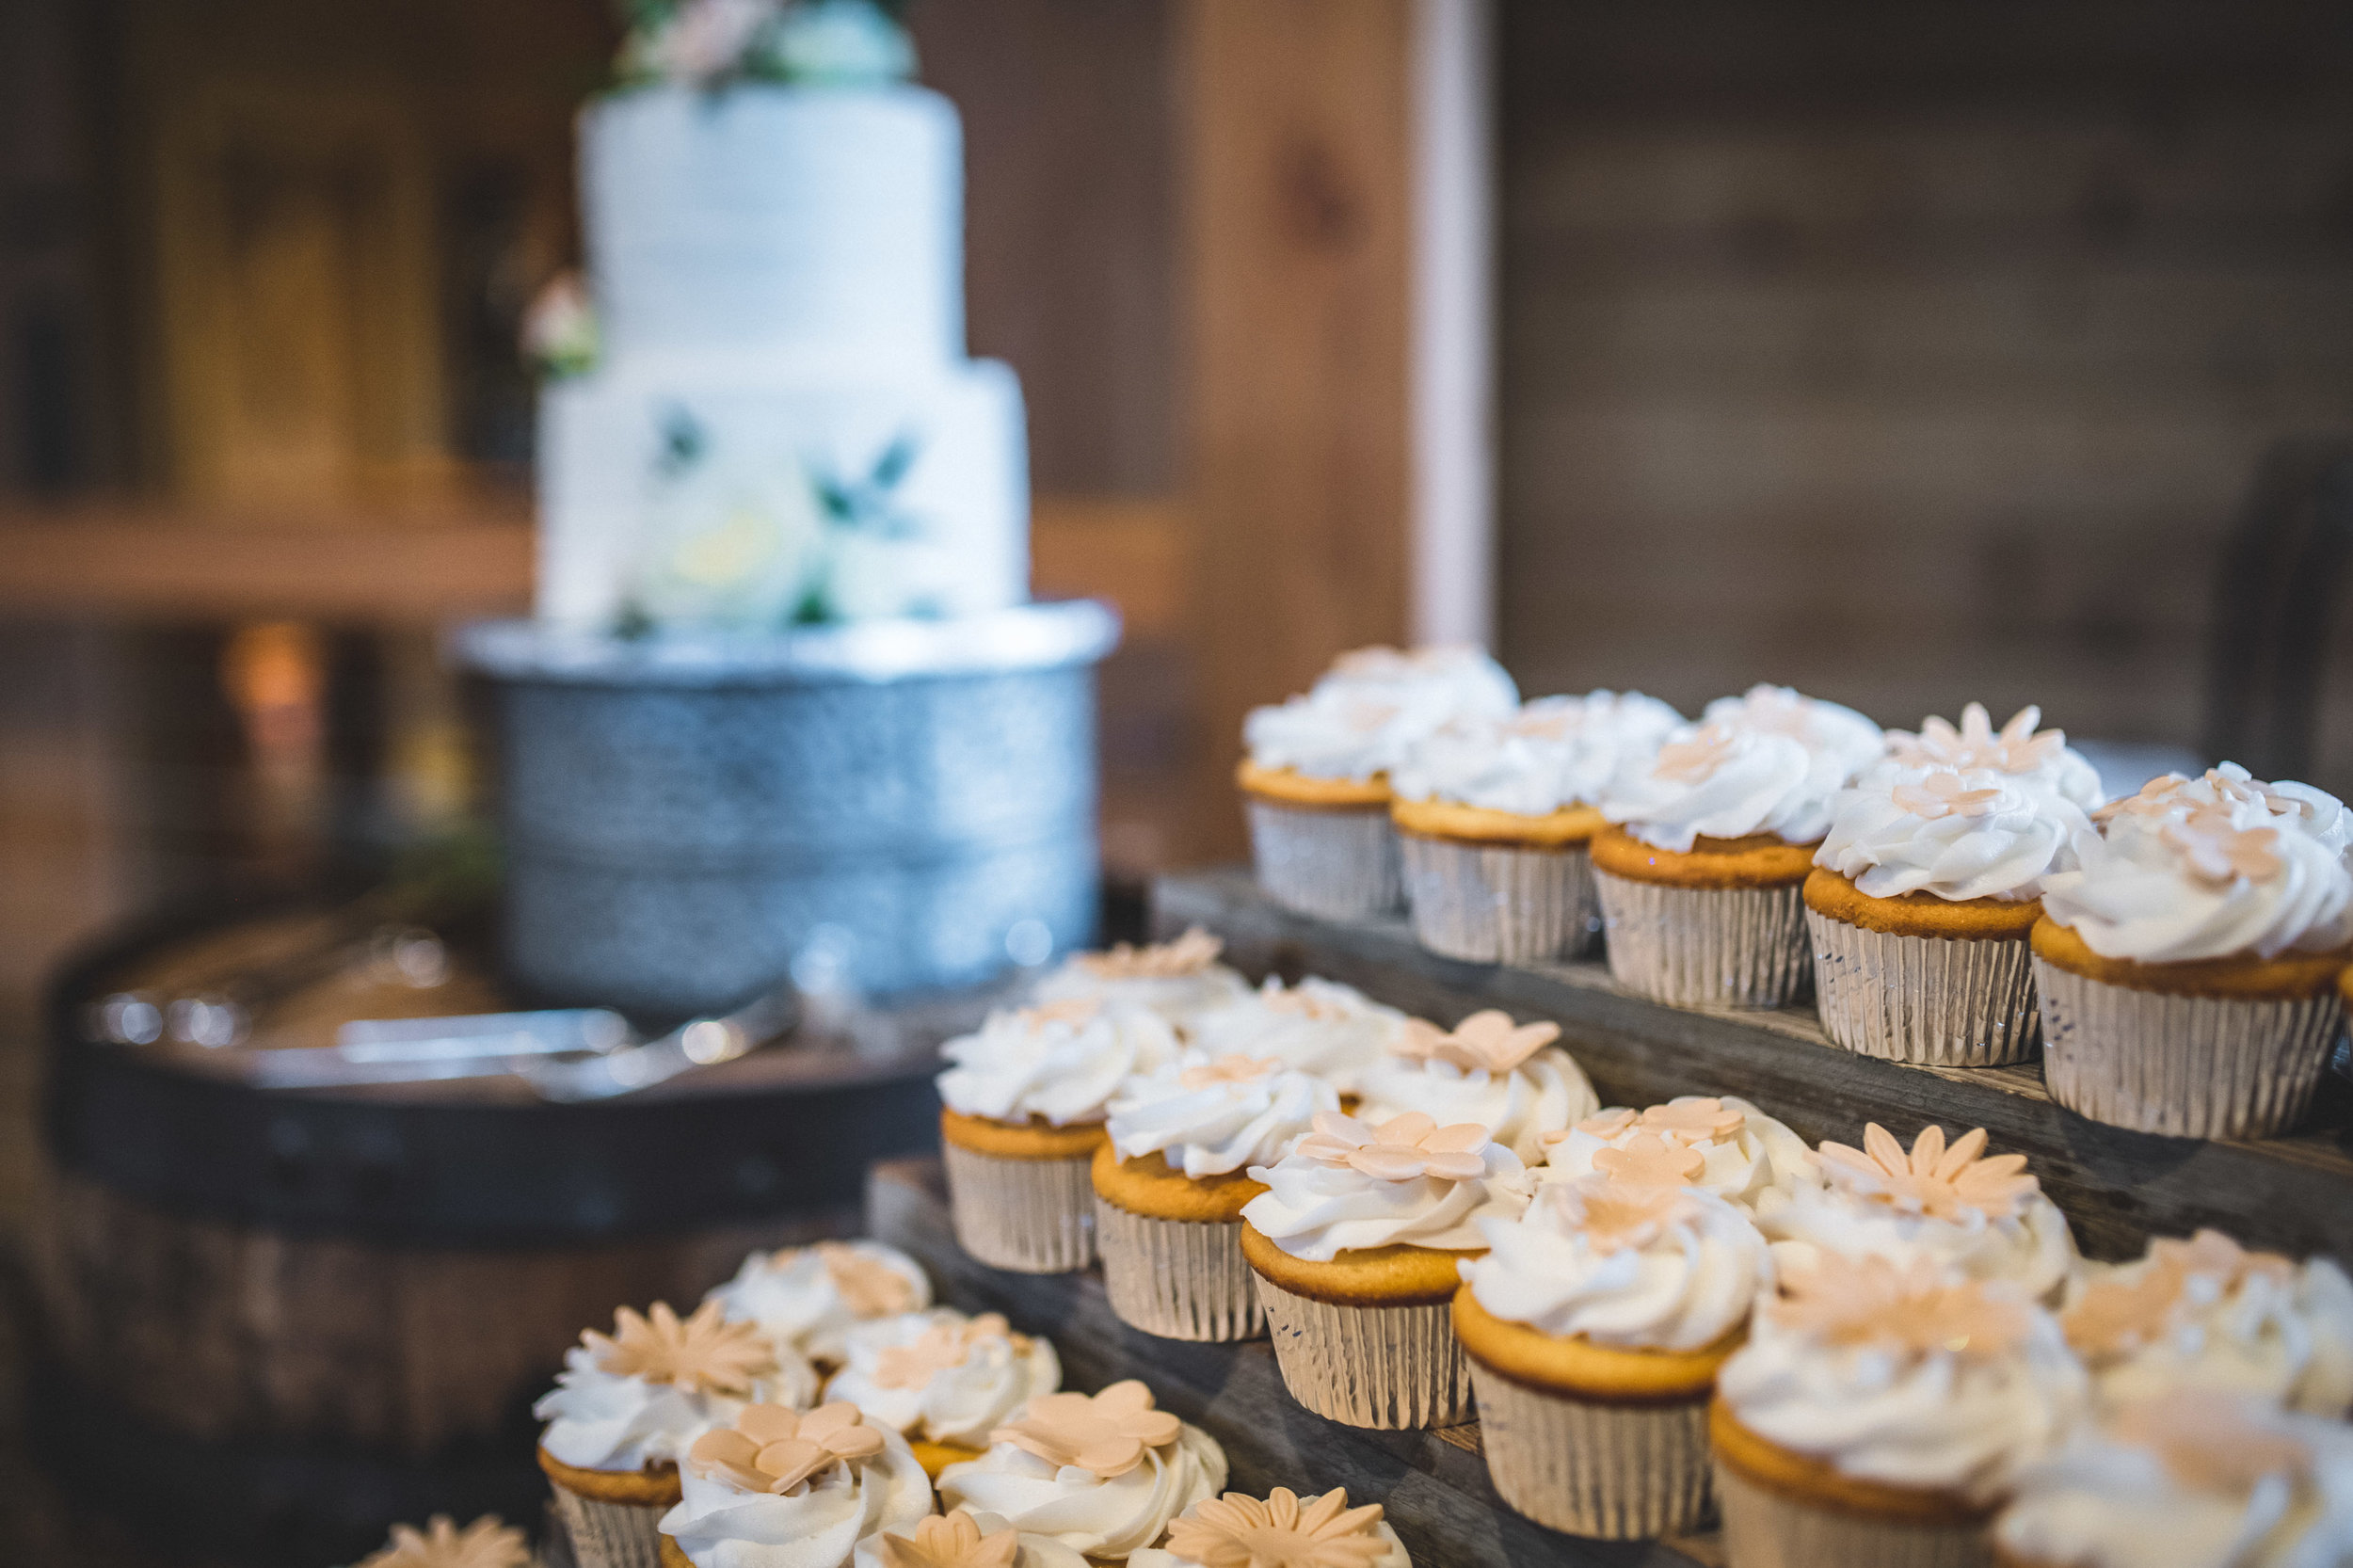 DetailsNashville-Steph+Will-Blog-AB-046.jpg